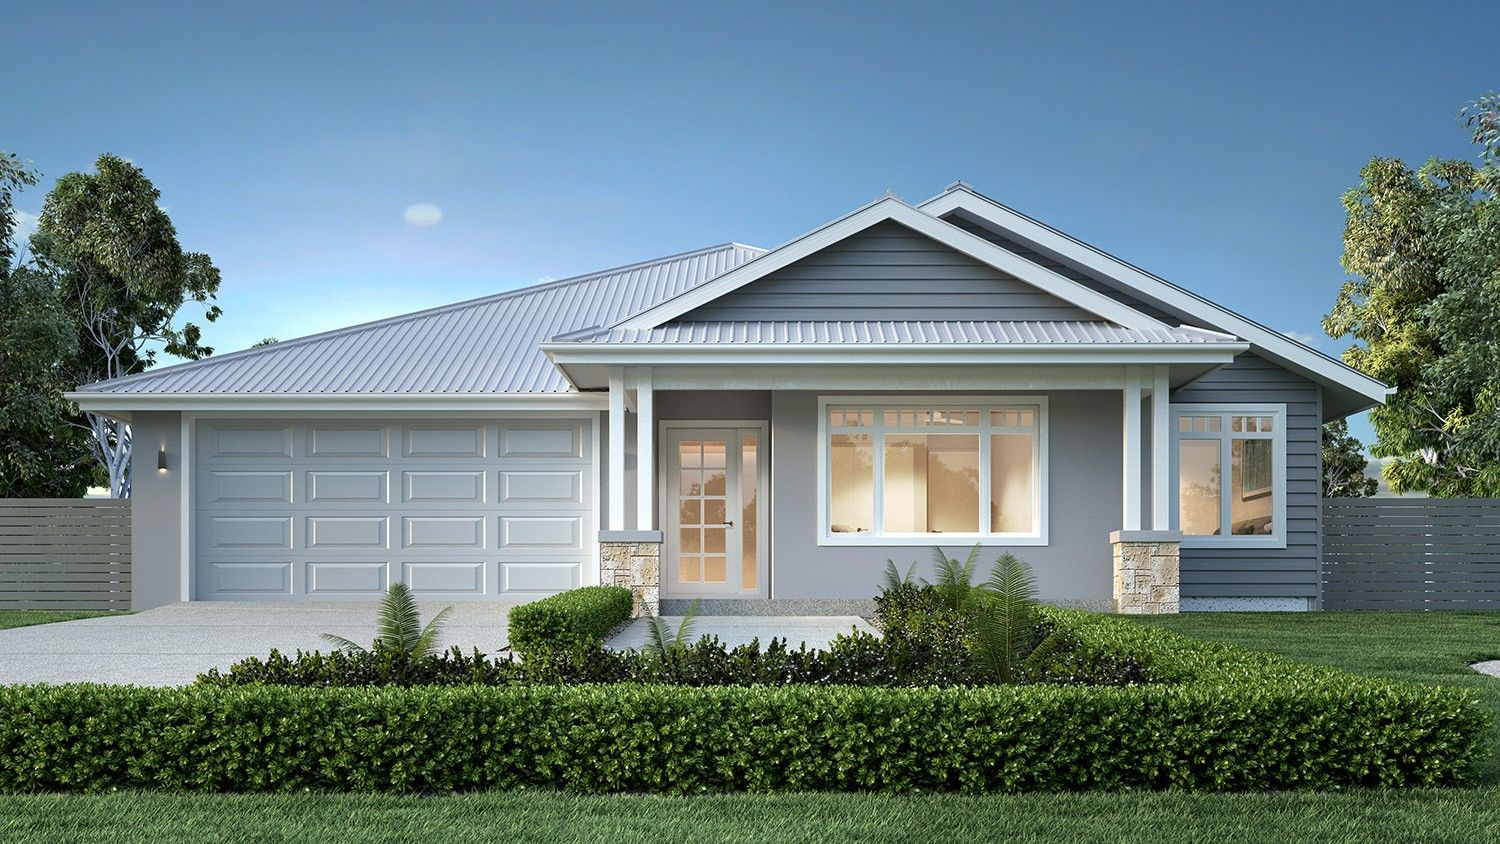 New Lot Titled Land Ready to Build, Ocean Grove VIC 3226, Image 2